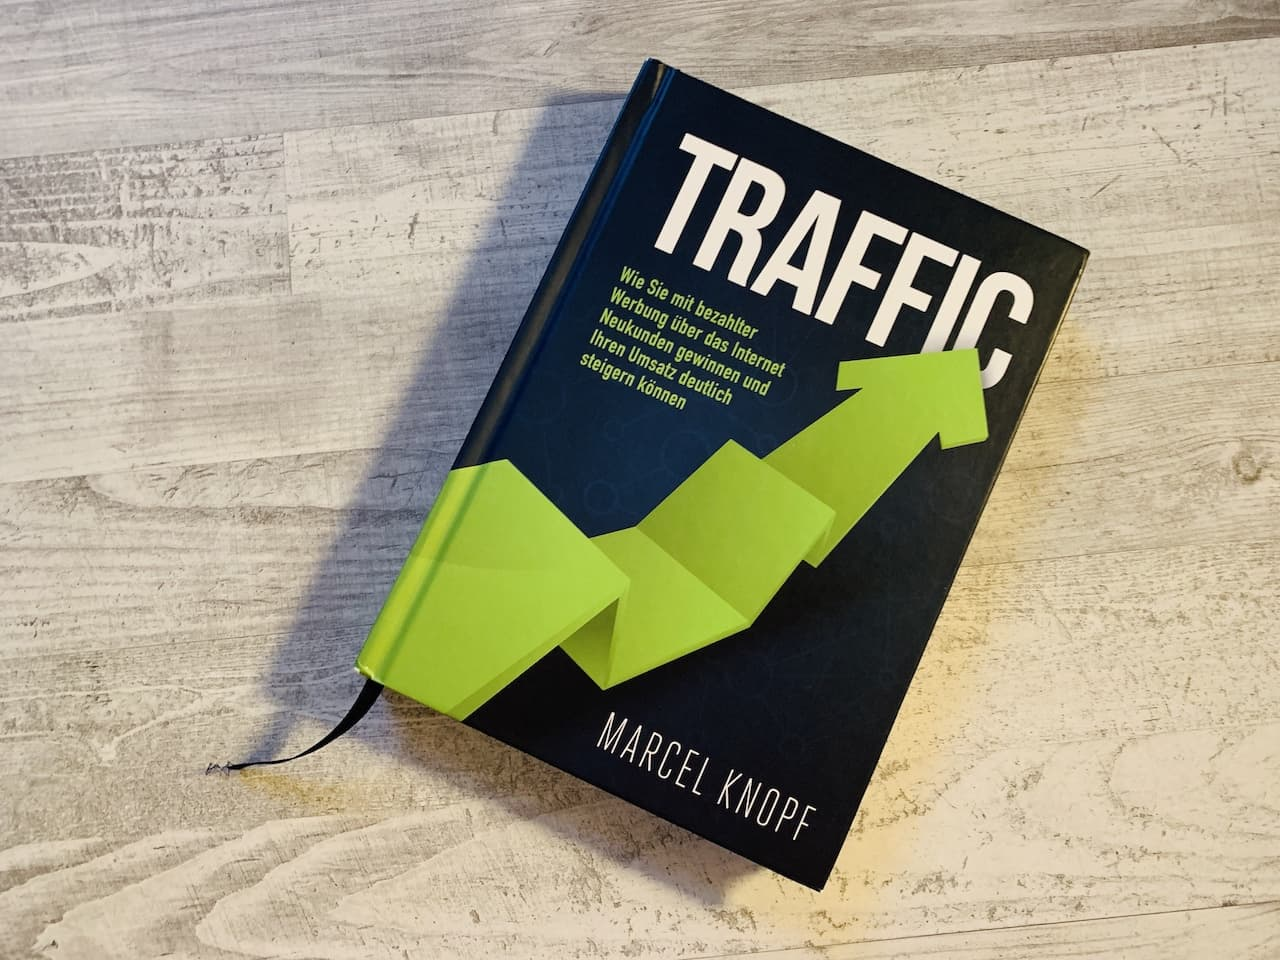 Traffic Buch Marcel Knopf Cover